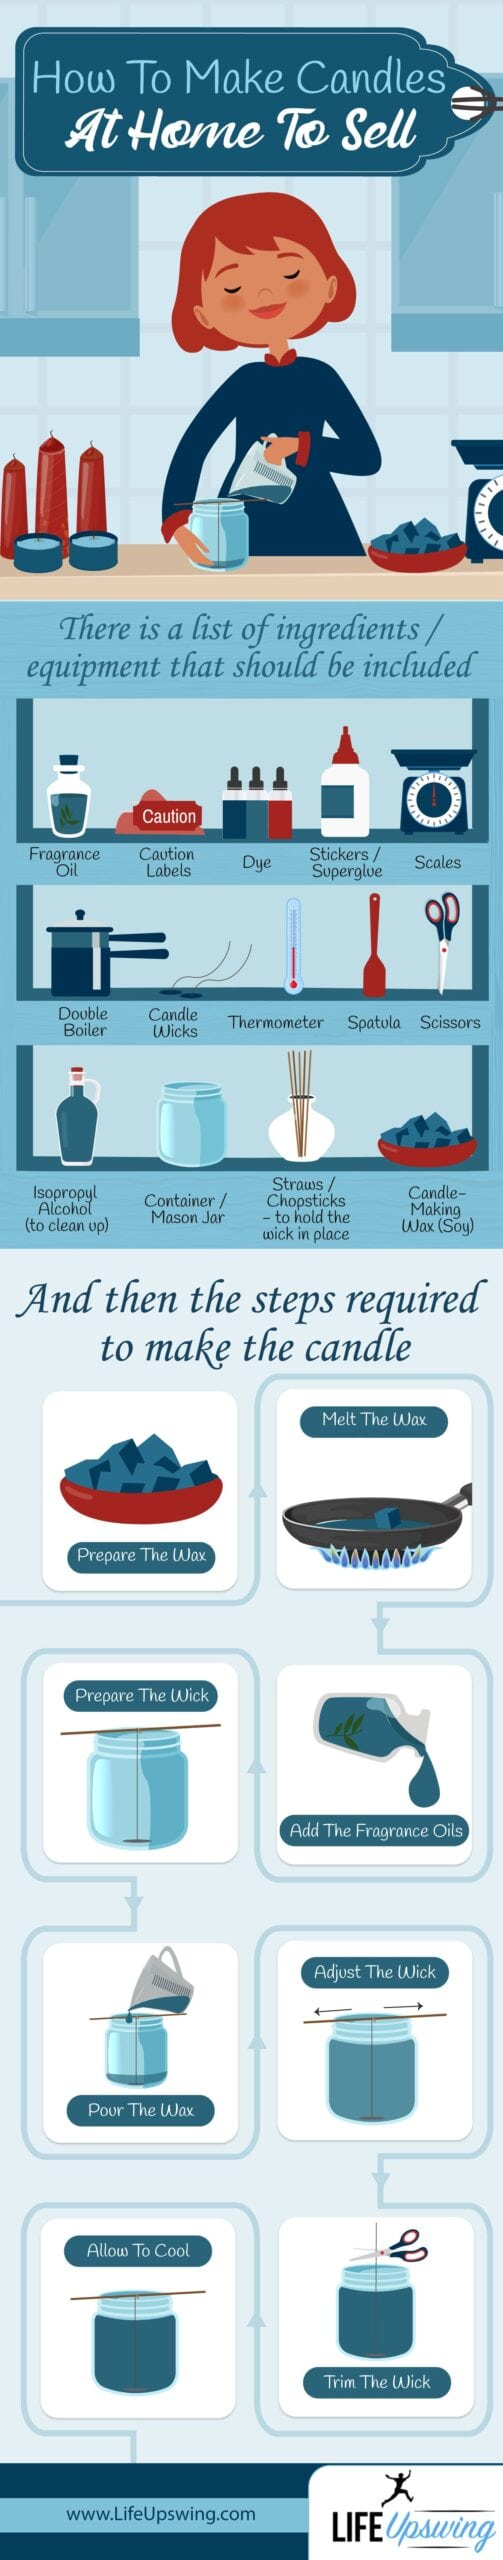 how-to-make-candles-infographic